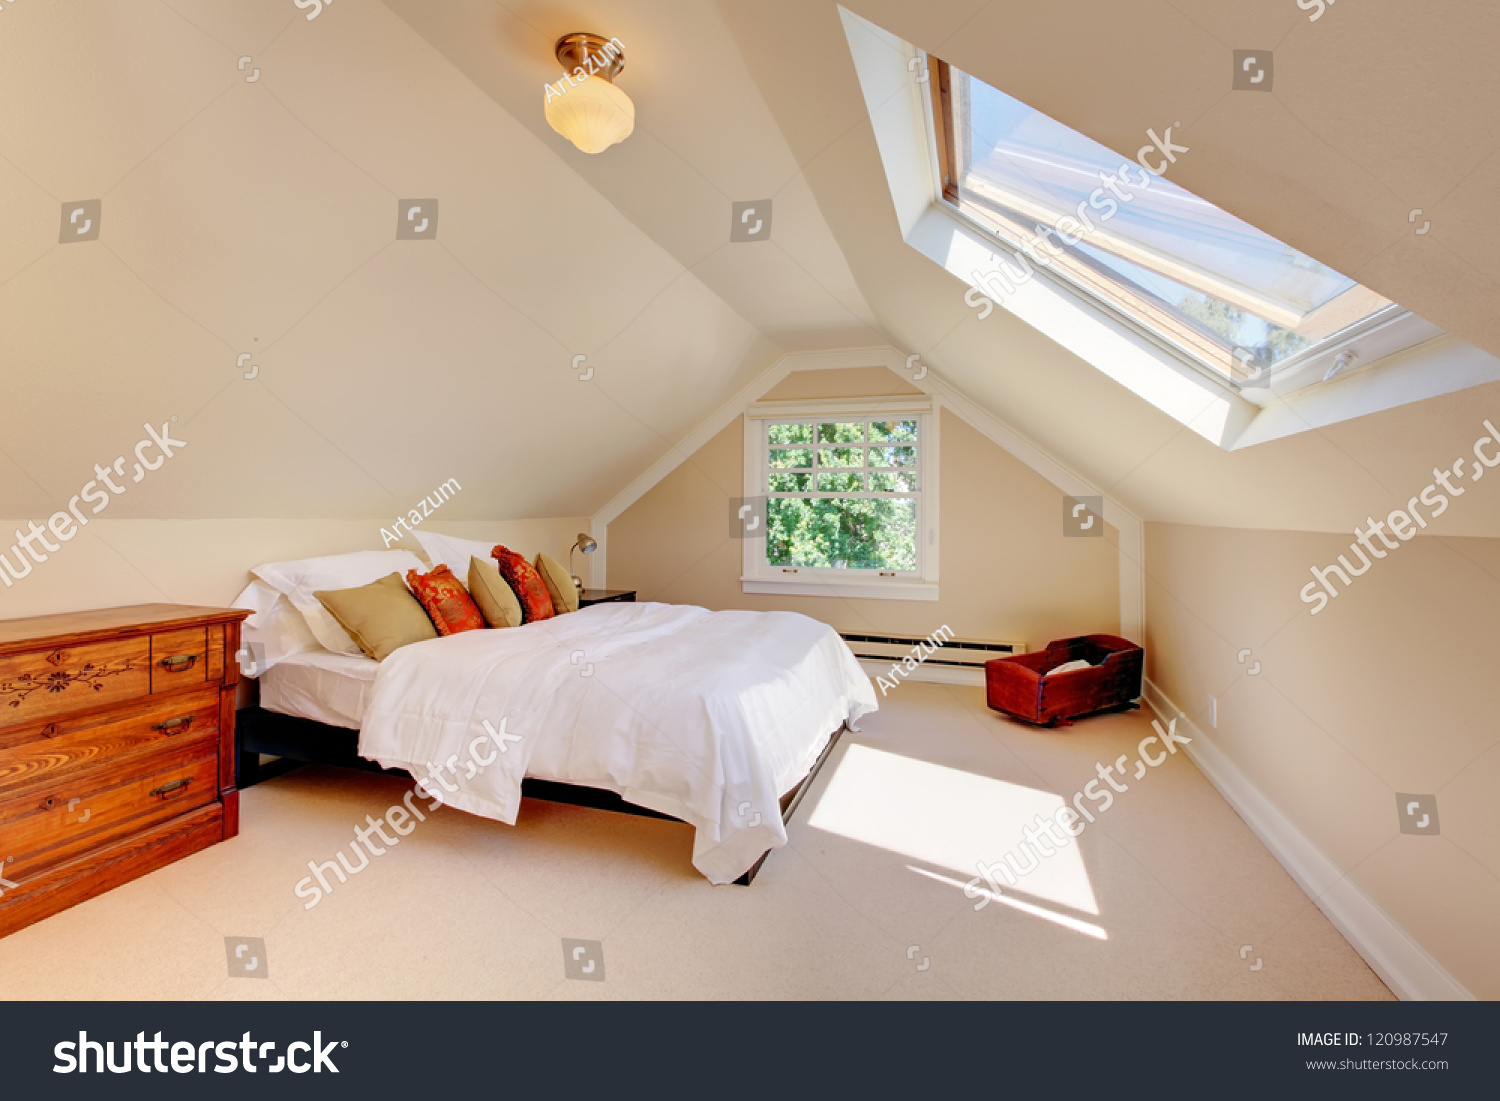 attic modern bedroom white bed skylight stock photo 120987547 shutterstock. Black Bedroom Furniture Sets. Home Design Ideas